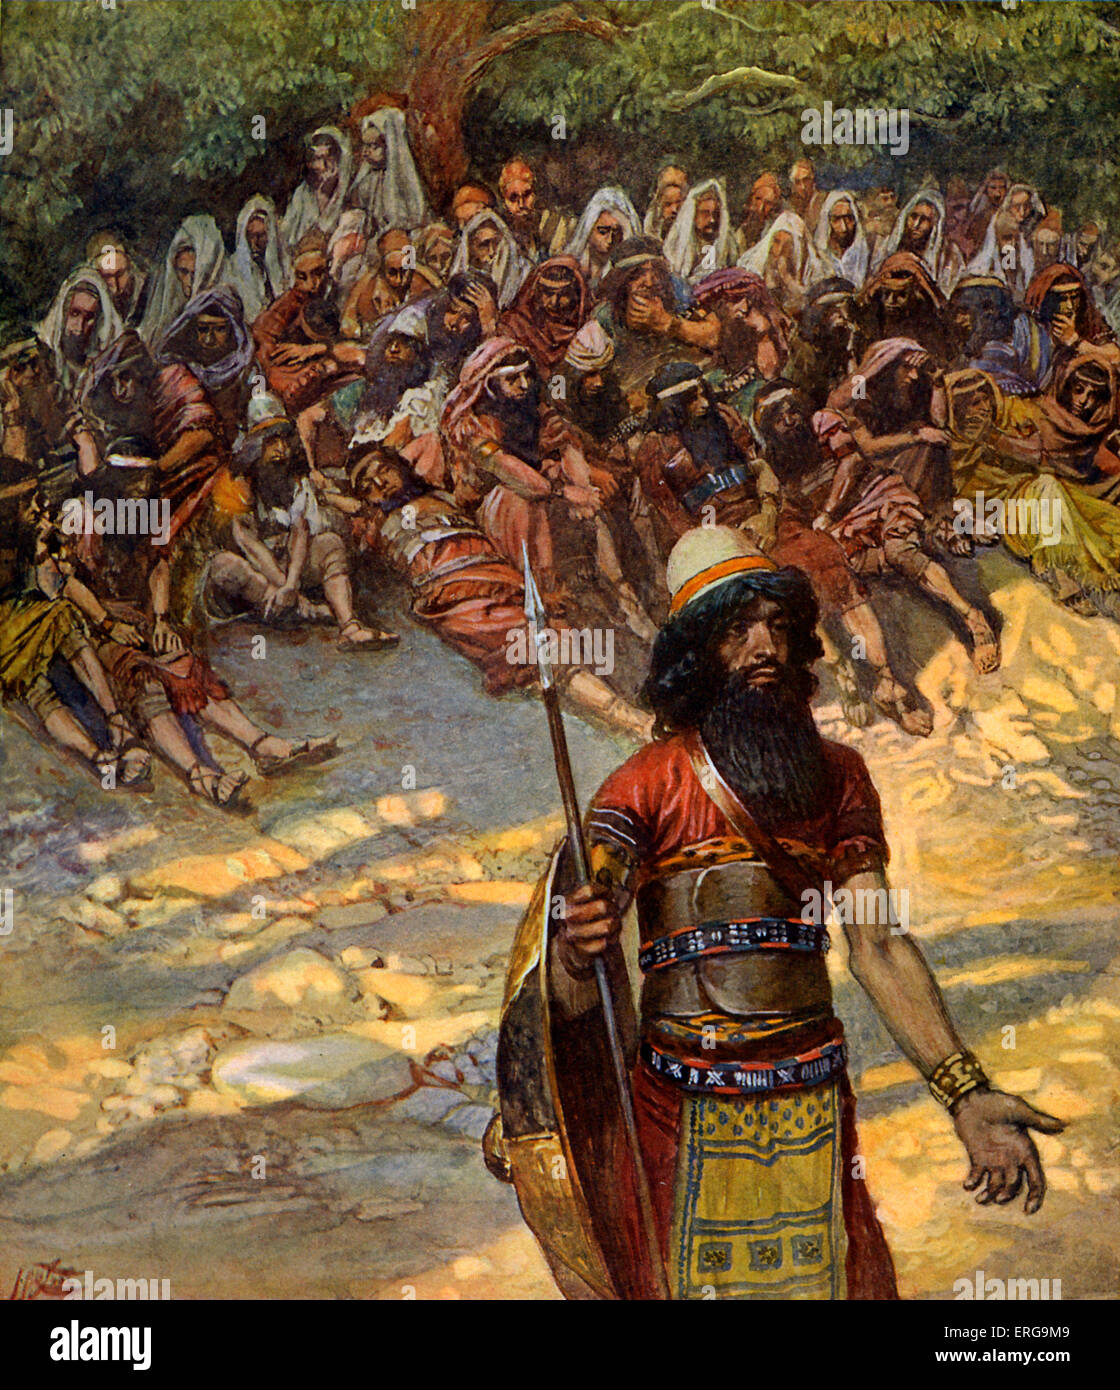 'Gideon asks for bread for the men of Succoth' by J James Tissot. Illustration to the Book of Judges, 8.5 - Stock Image